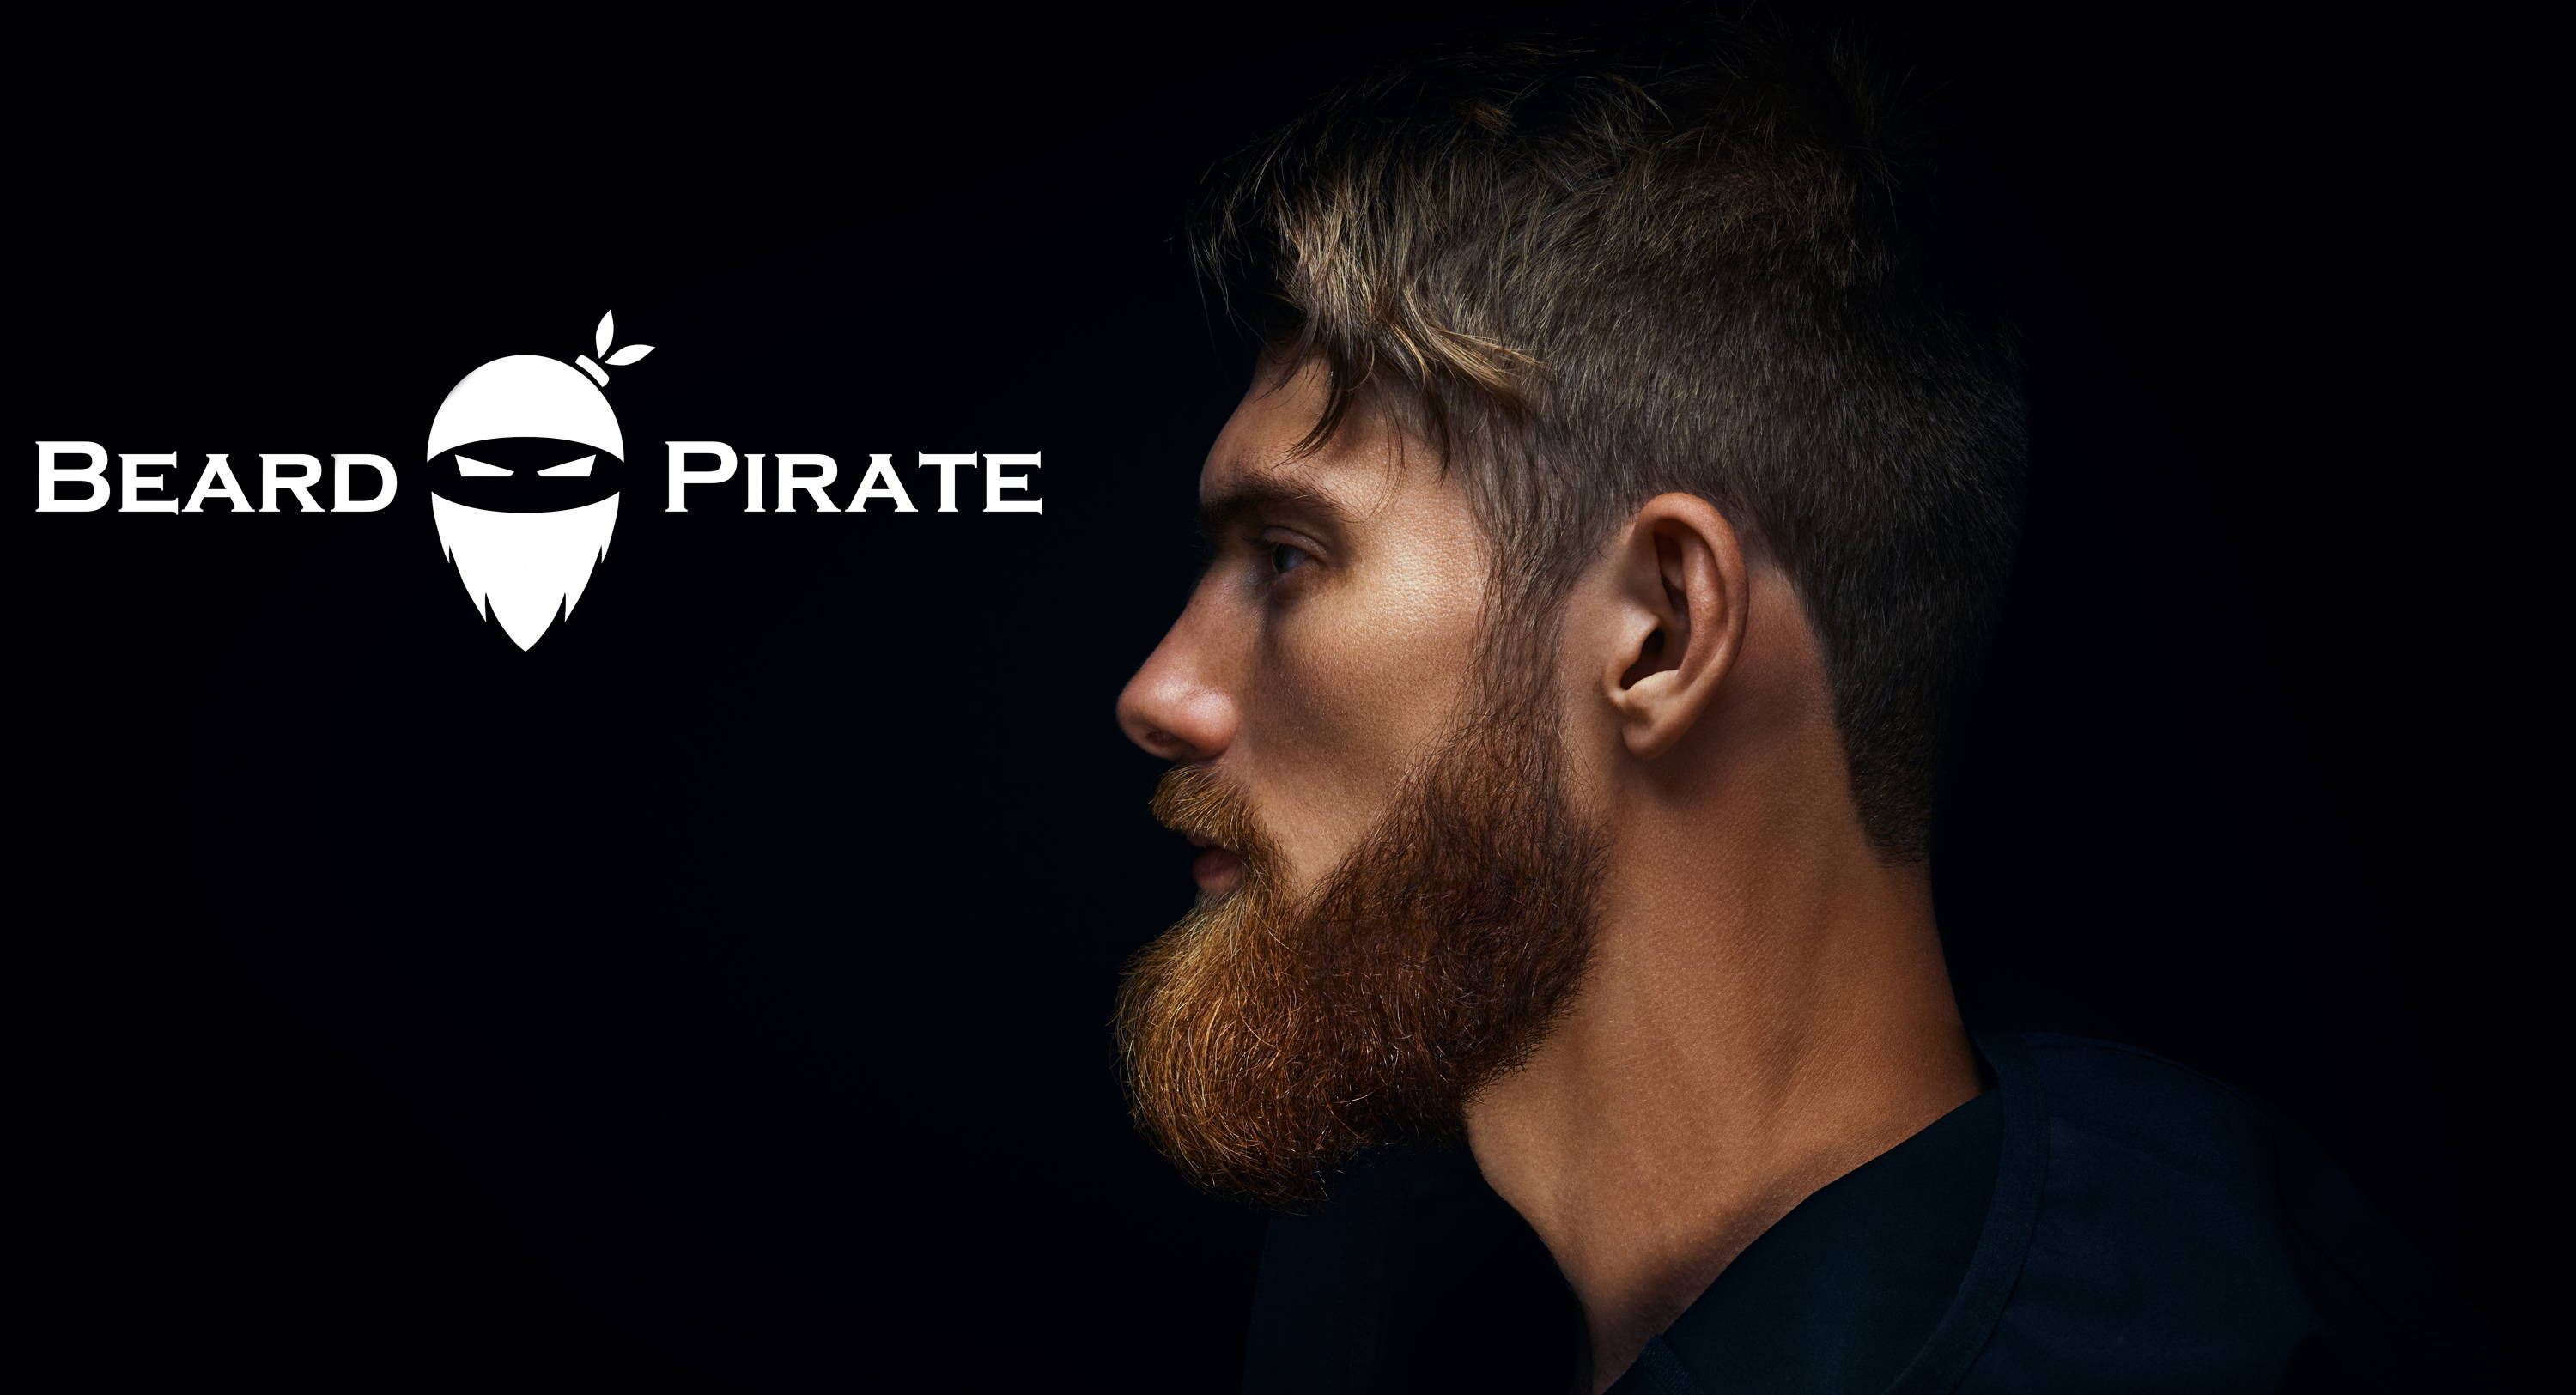 beard pirate anleitung background